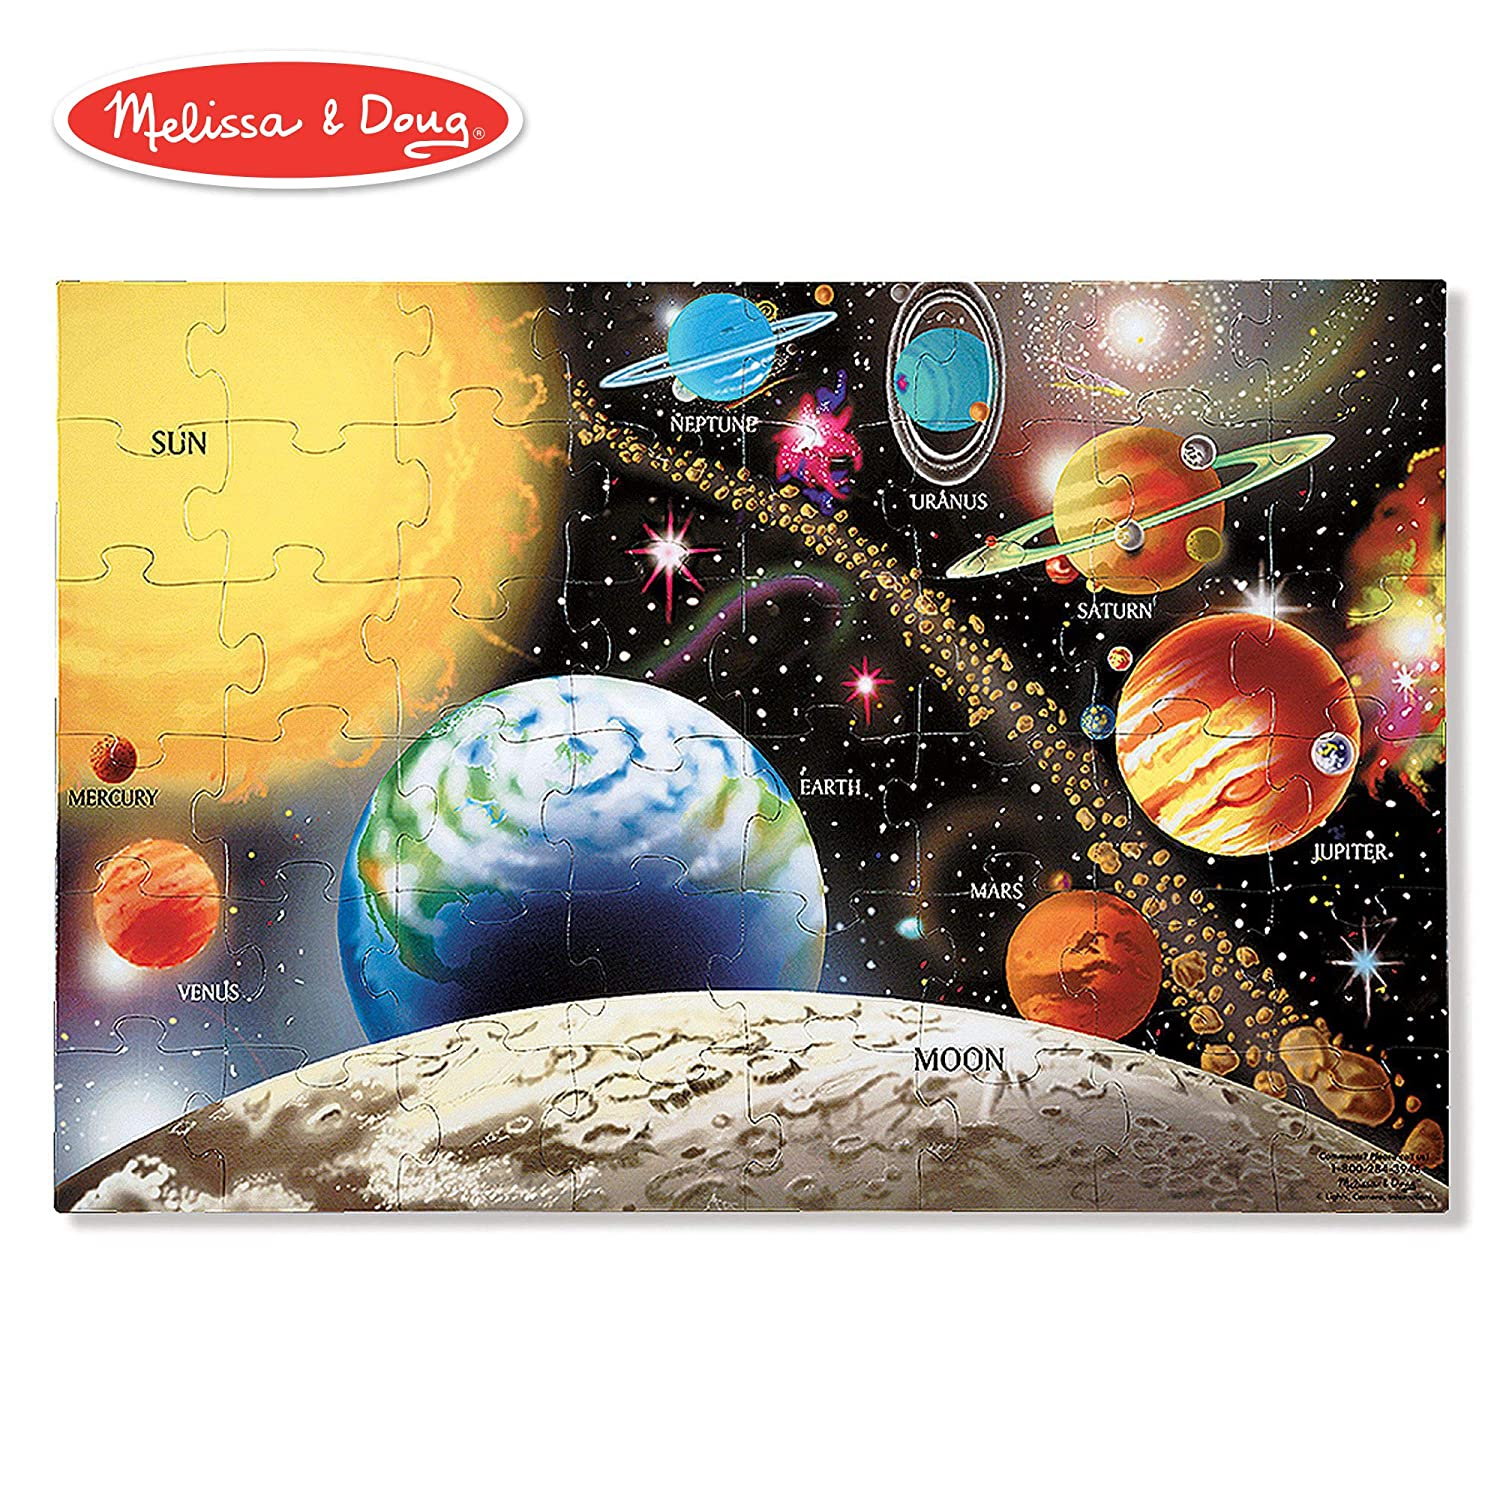 "Melissa & Doug Solar System Floor Puzzle (Floor Puzzles, Easy-Clean Surface, Promotes Hand-Eye Coordination, 48 Pieces, 36"" L x 24"" W)"